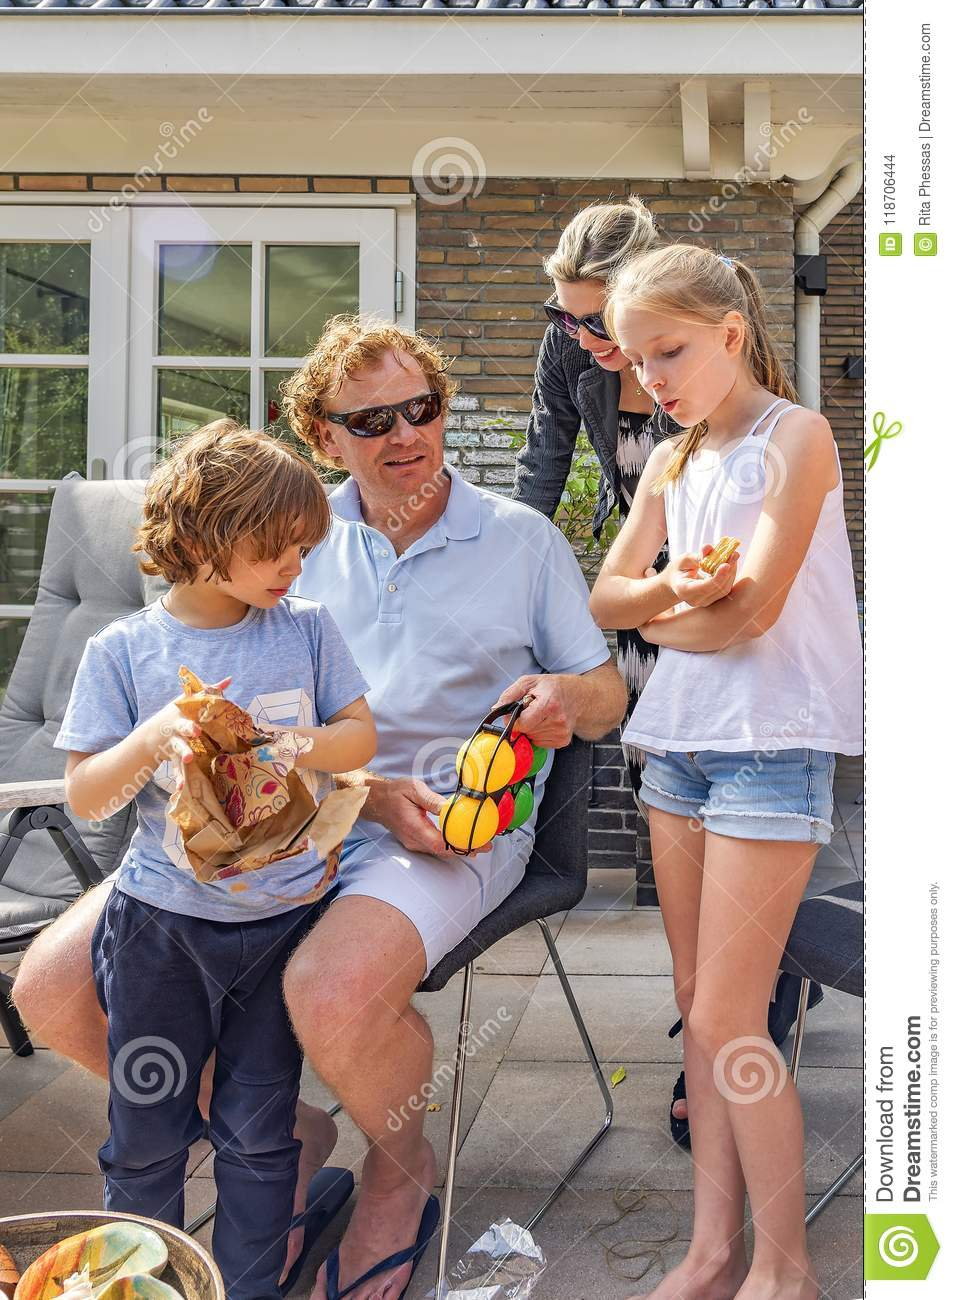 Portrait of a happy family in the garden. A little boy picks up his birthday present, his father, mother, and sister admire the gi